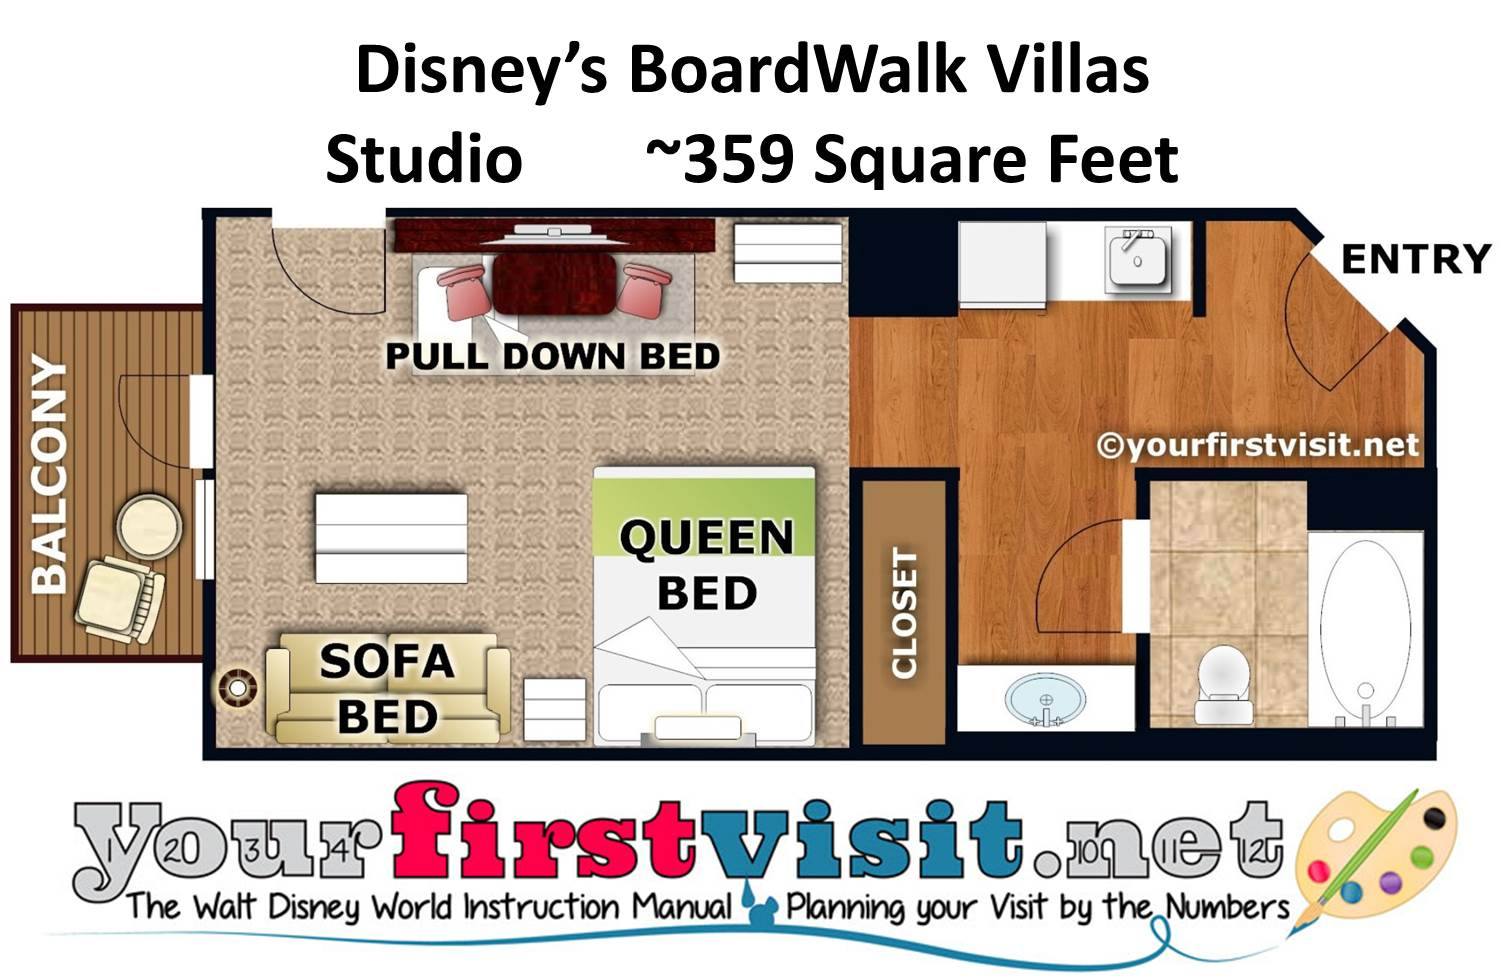 Photo tour of a studio at disneys boardwalk villas two bedroom villa floor plan studio disneys boardwalk villas from yourfirstvisit sciox Image collections